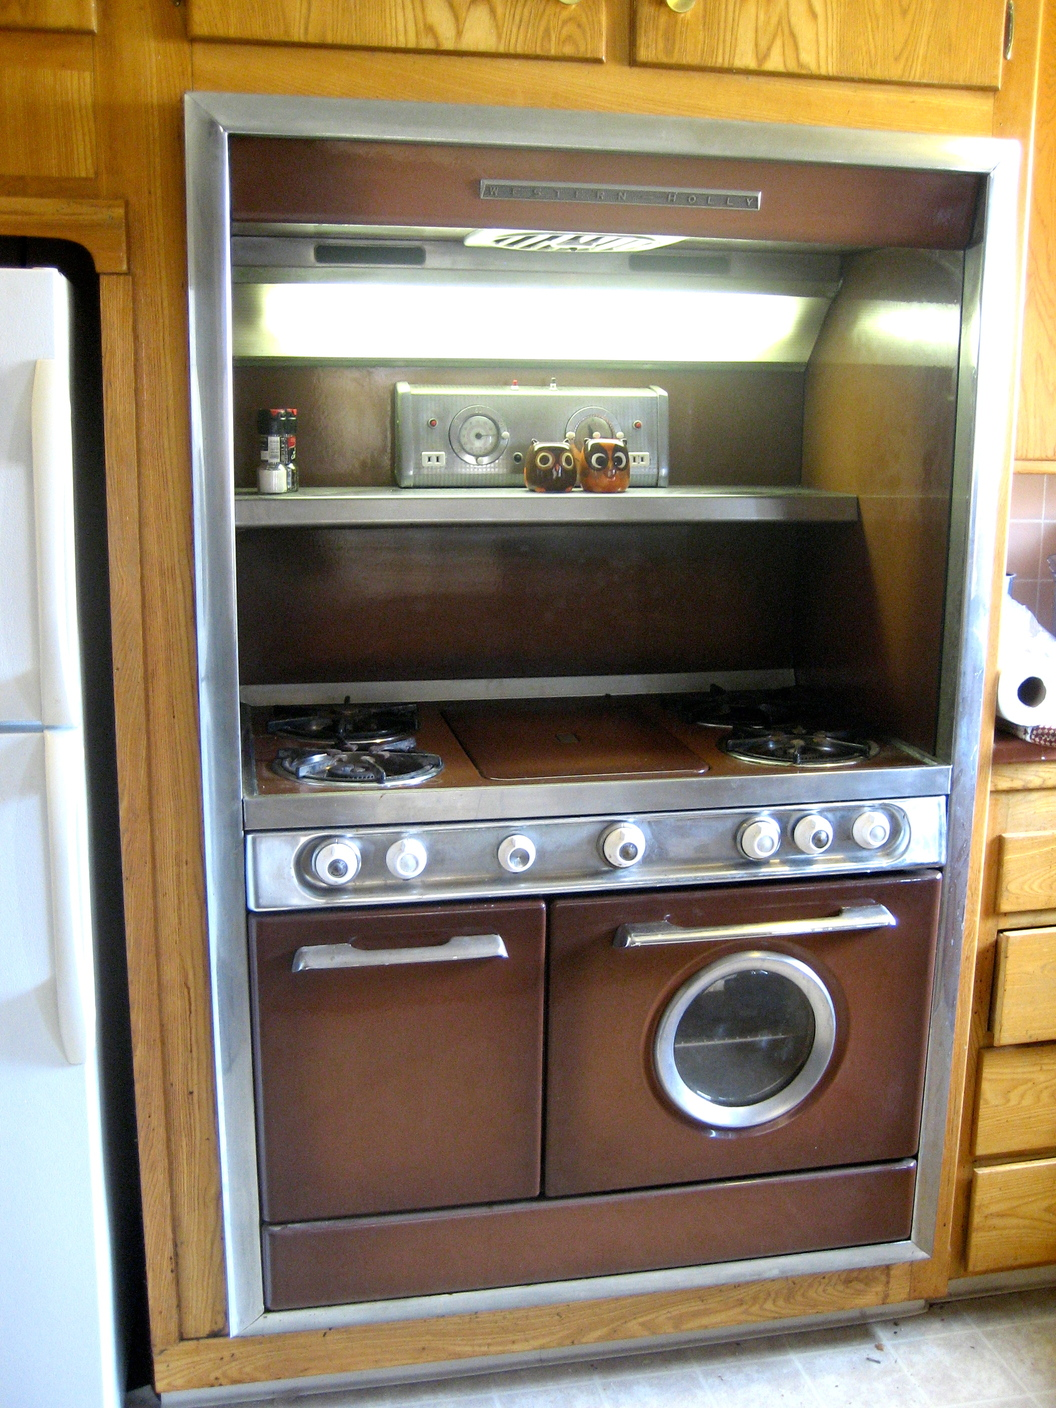 208 pictures of vintage stoves refrigerators and large for 0 kitchen appliances